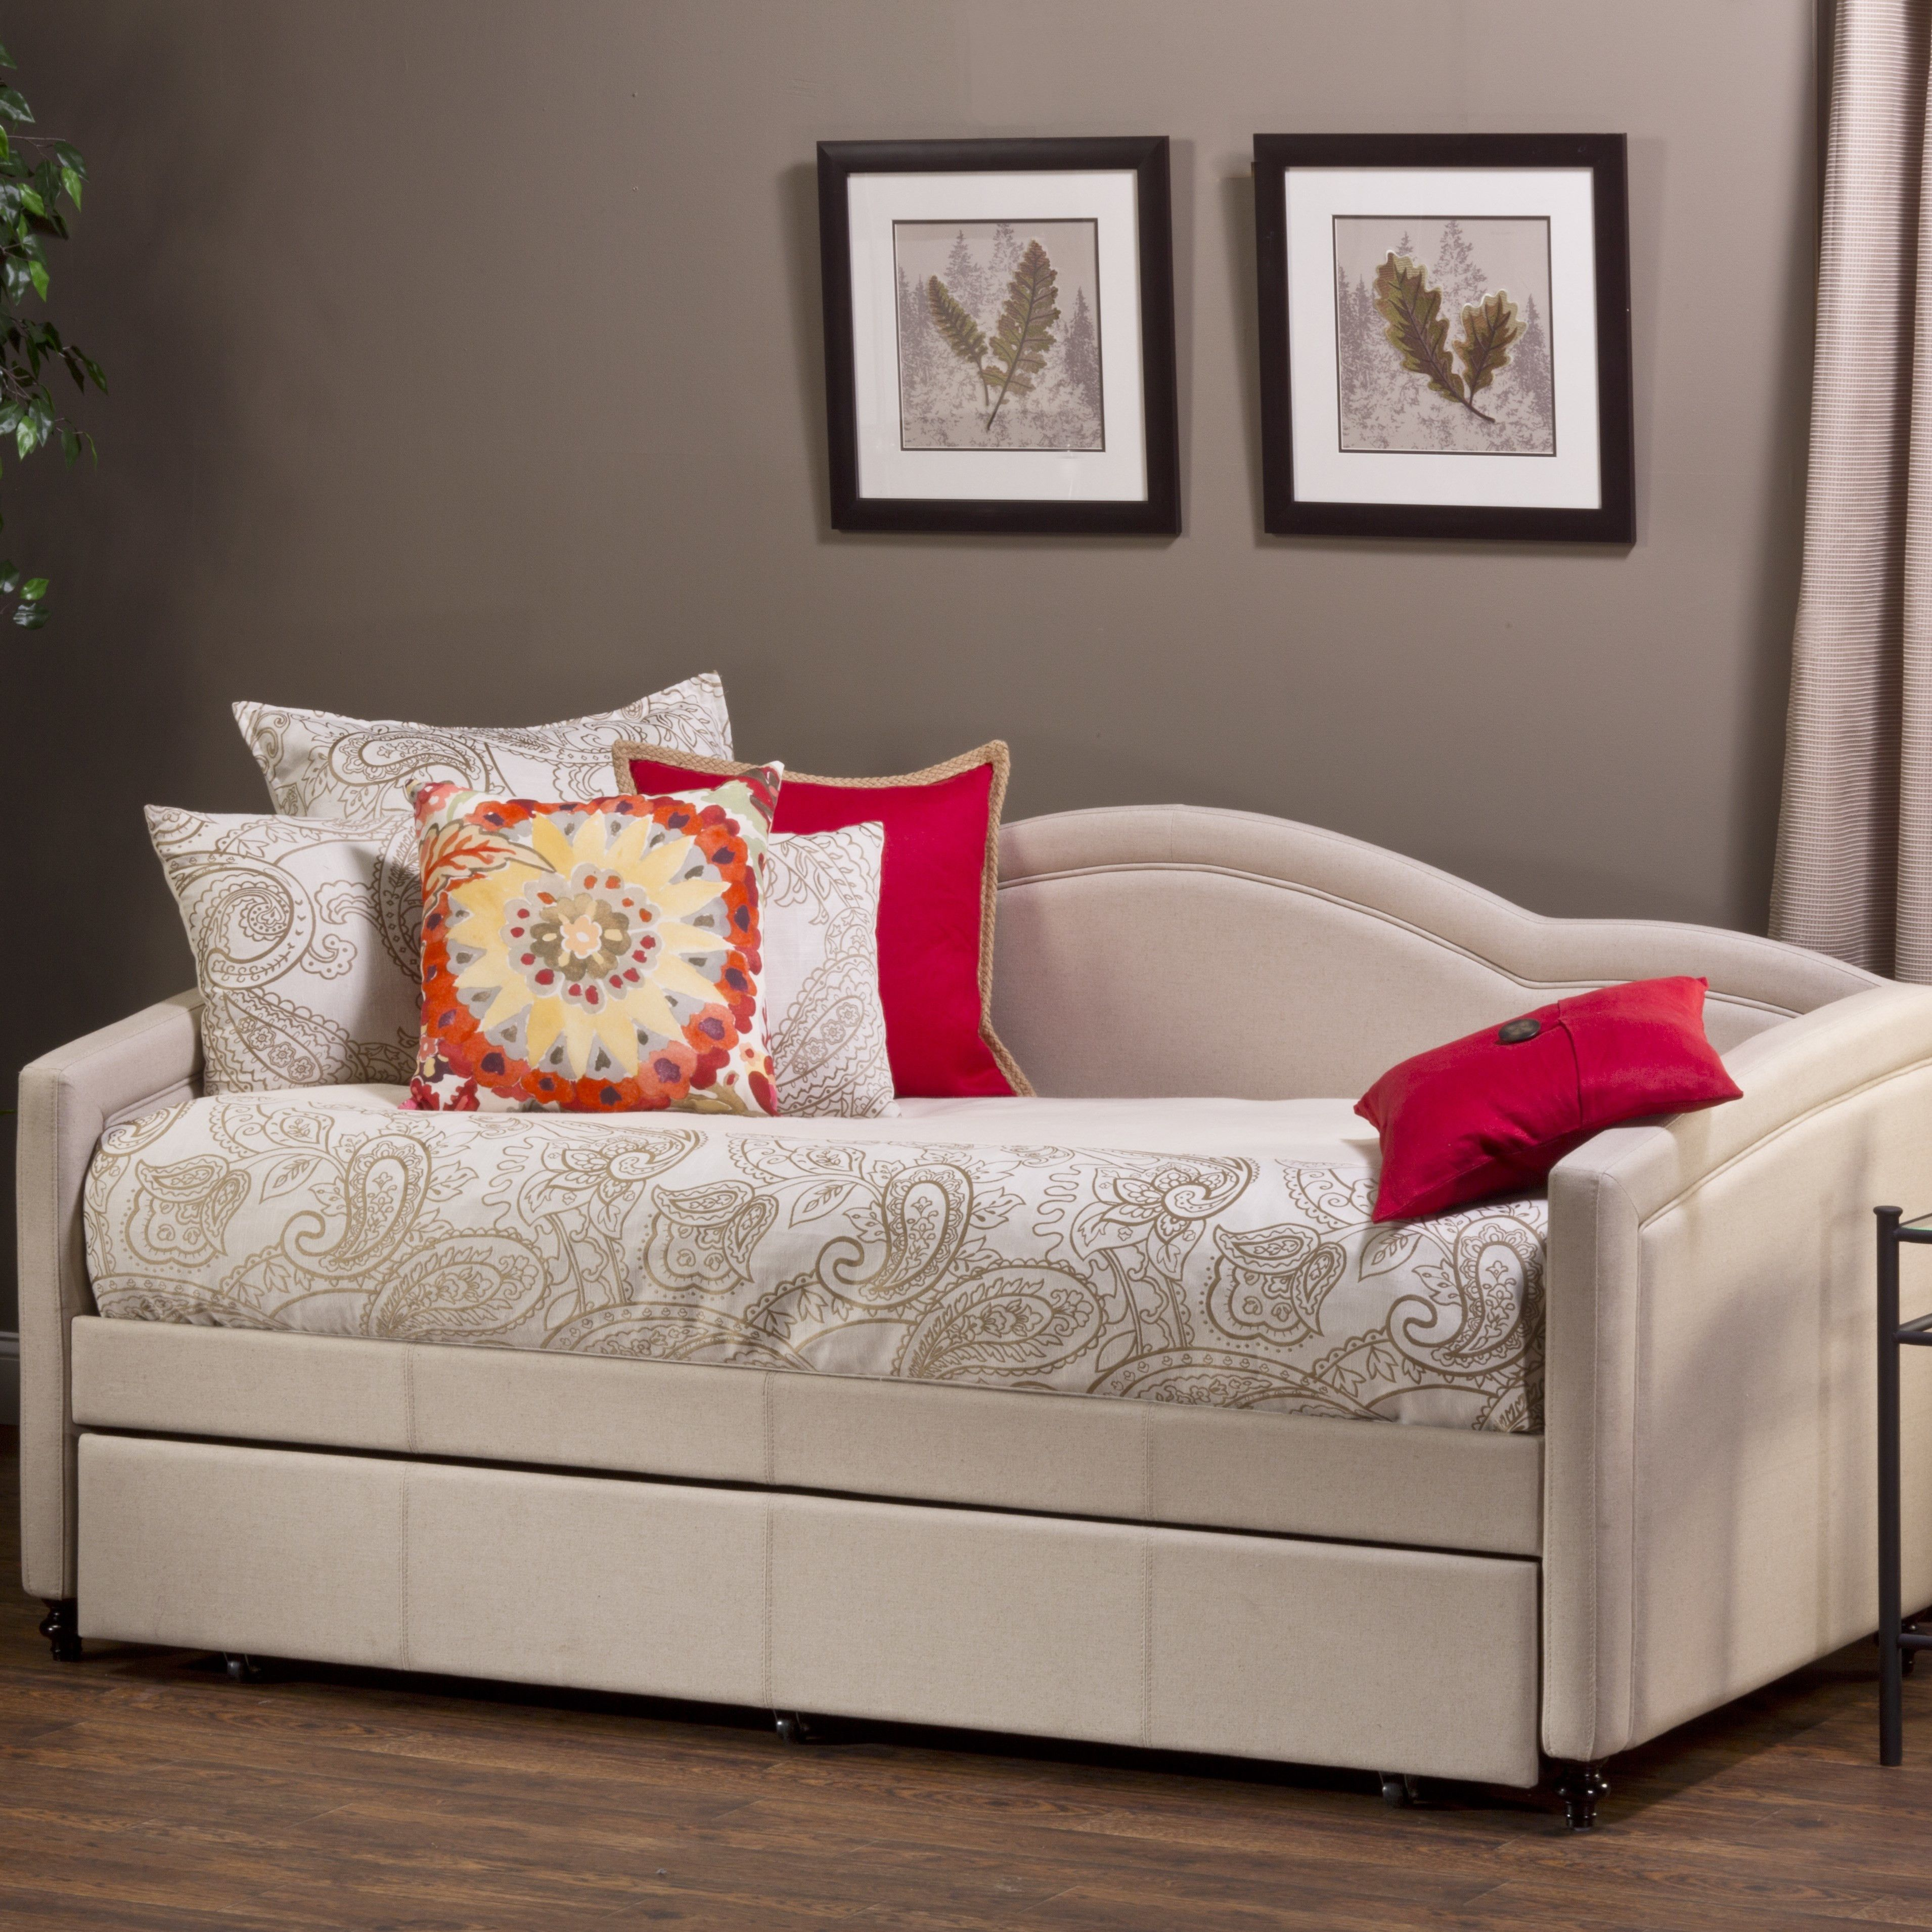 Daybed with pop up trundle ikea hillsdale furniture jasmine daybed with trundle  stuff  pinterest